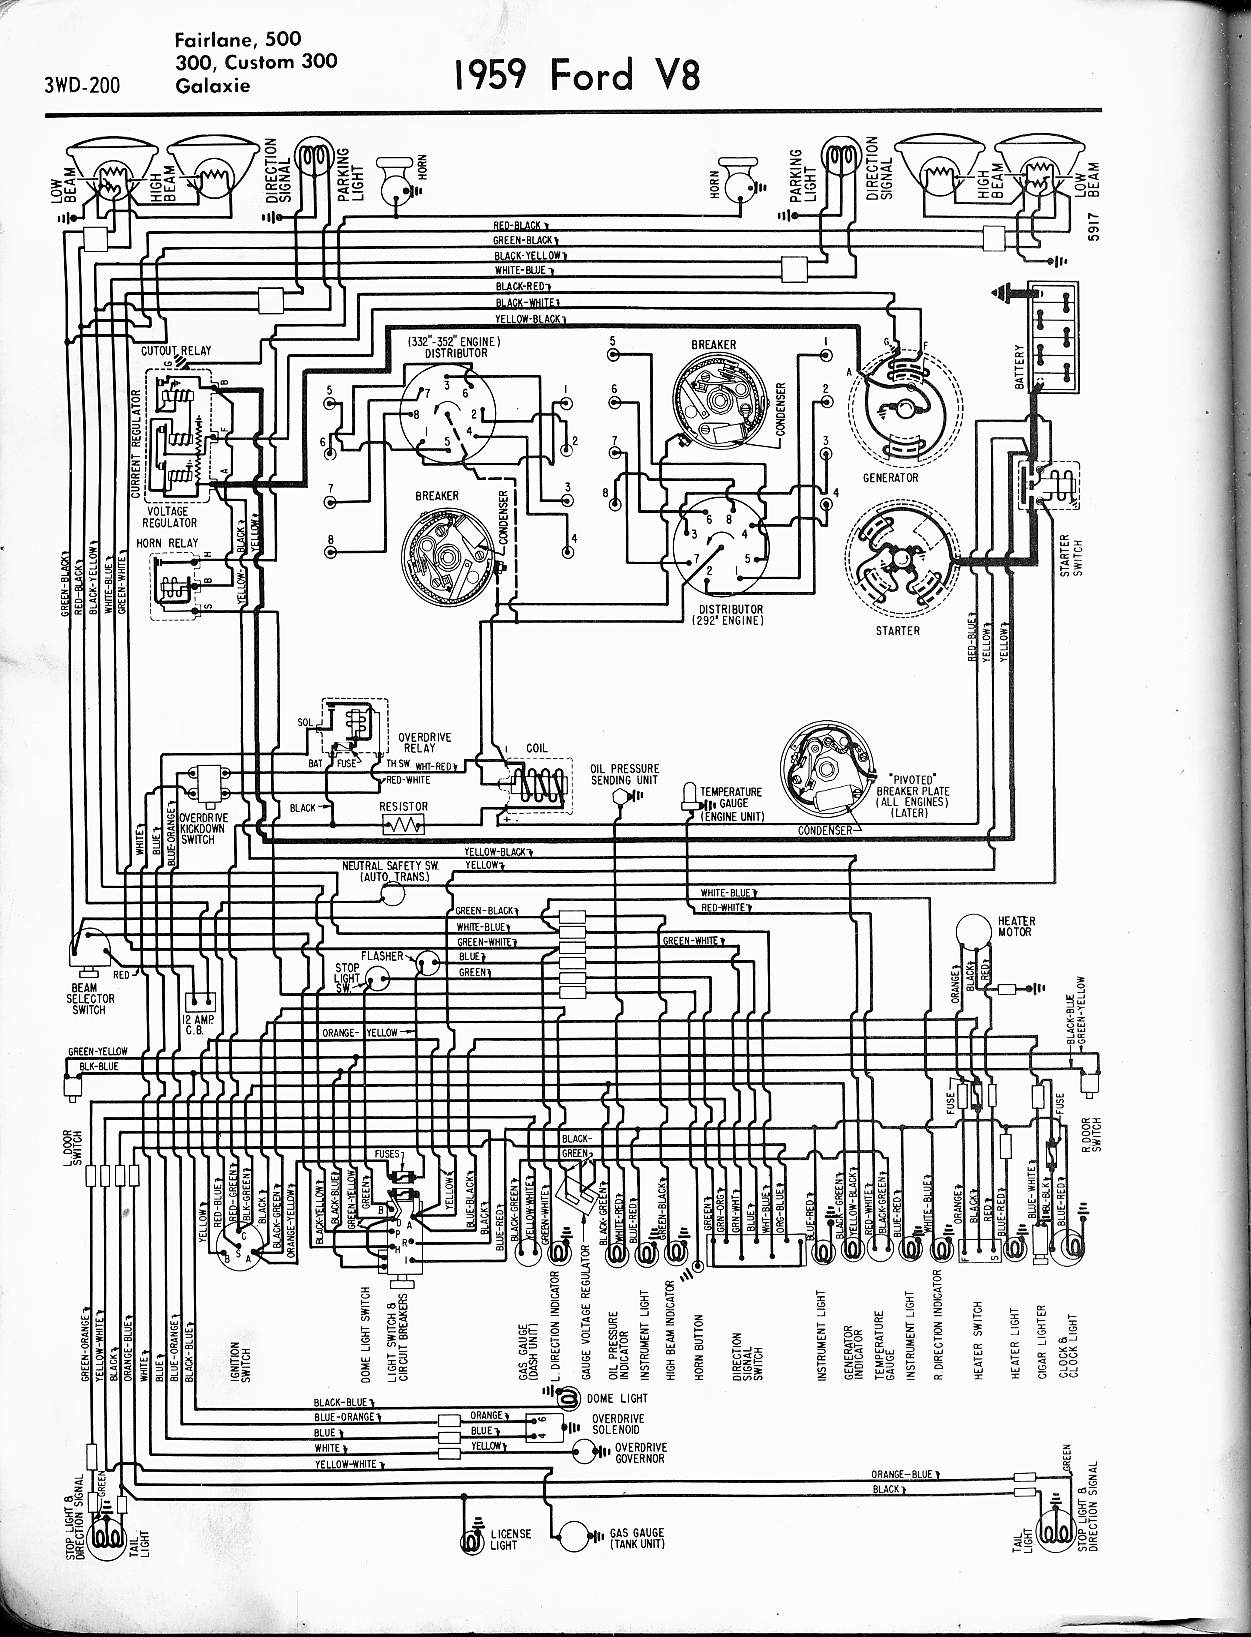 Awesome 57 65 Ford Wiring Diagrams Wiring Cloud Intelaidewilluminateatxorg